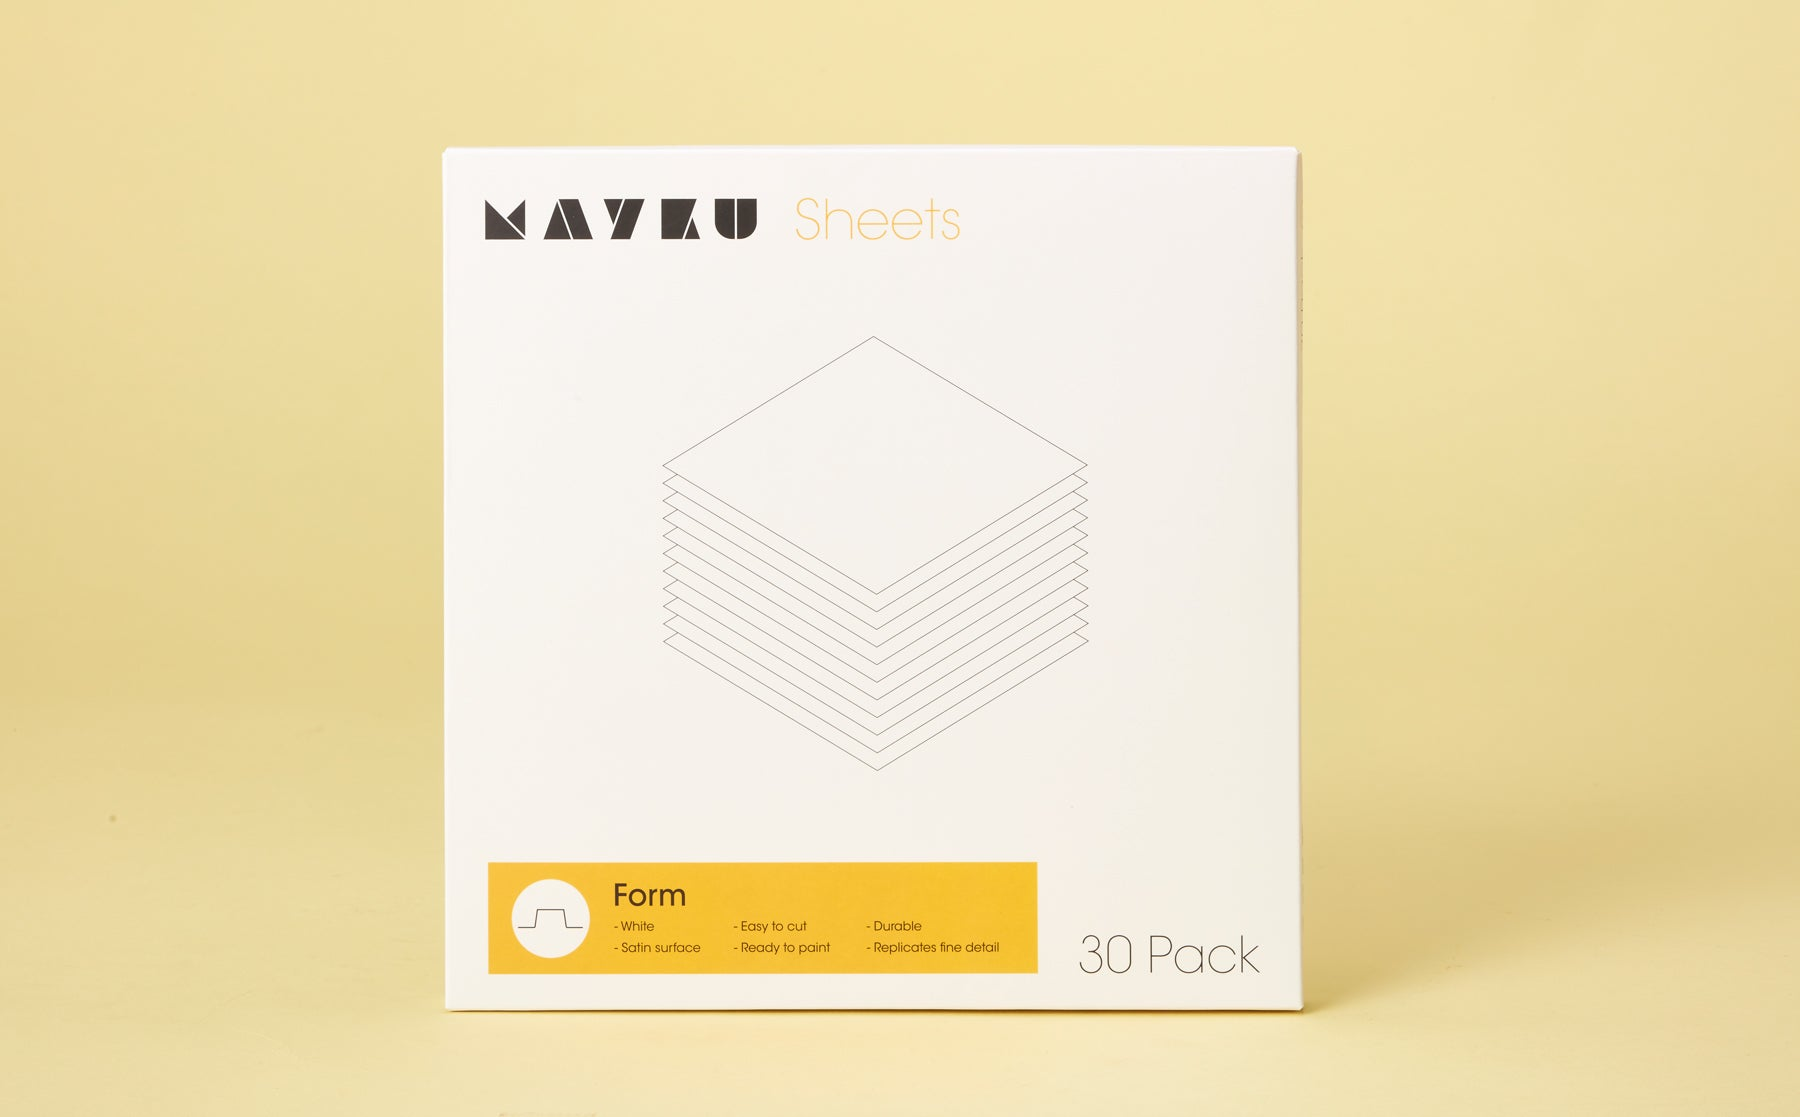 Mayku Form Sheet 30 Pack